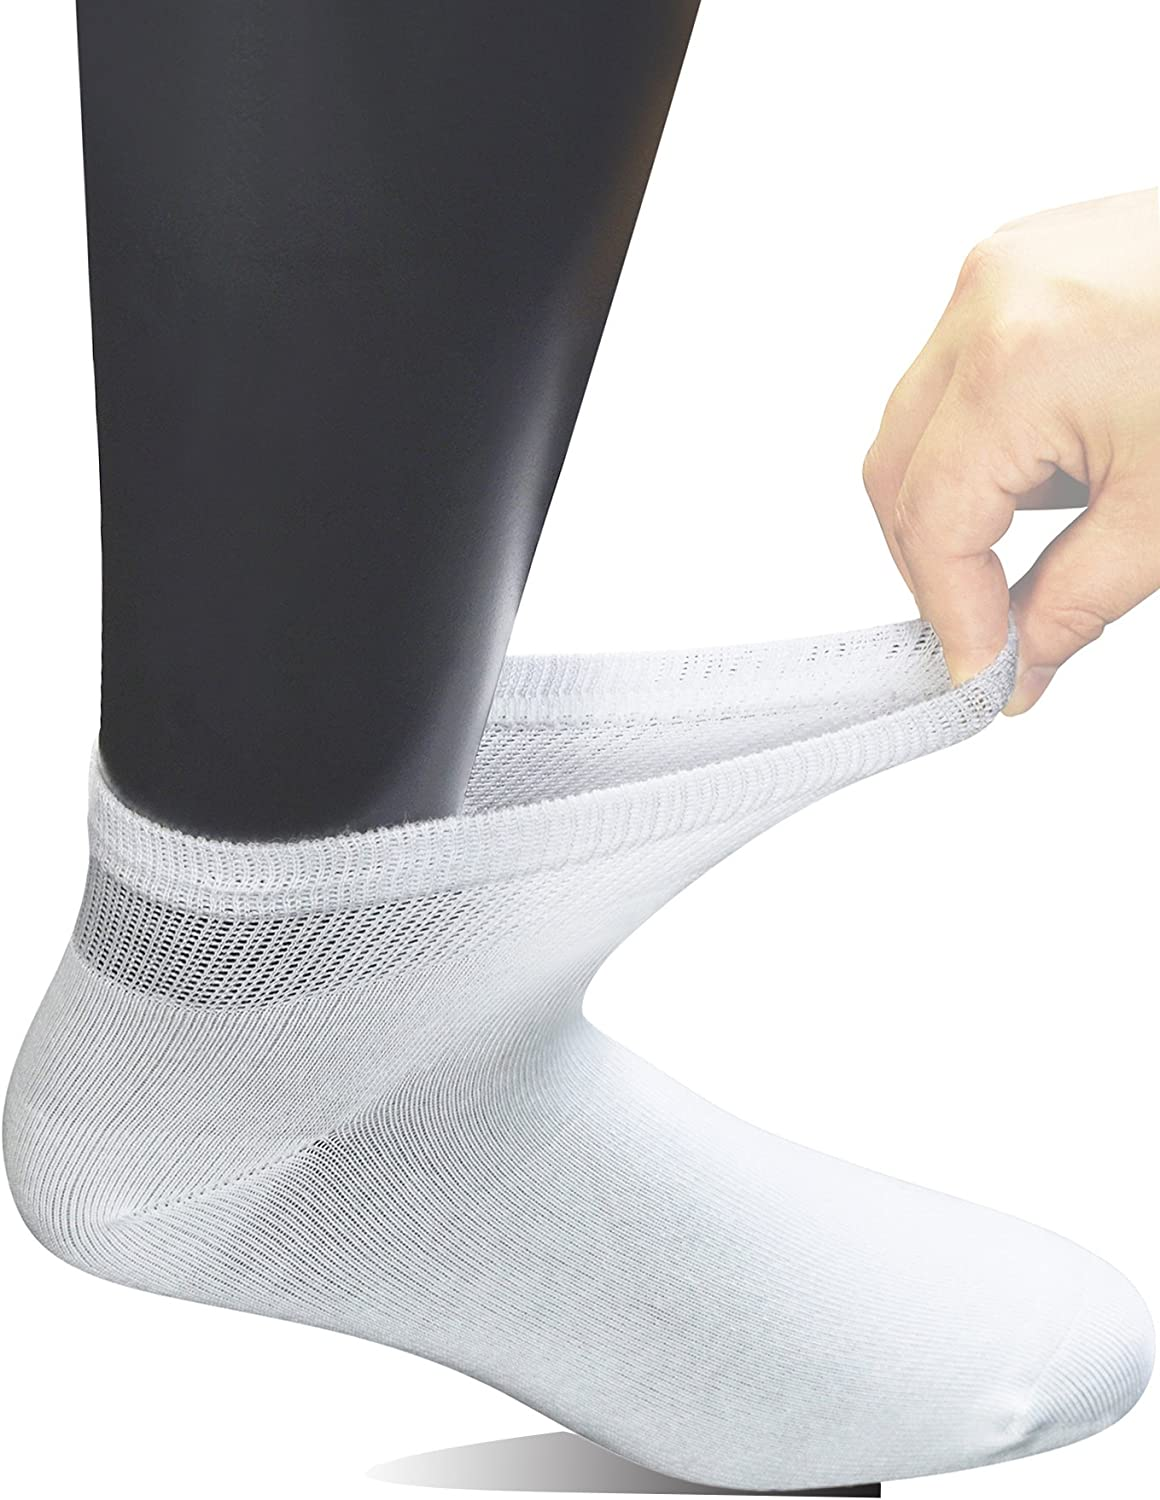 Yomandamor Men's 6 Bombing free shipping Wholesale Pairs Combed Diabetic Cotton Socks Ankle with